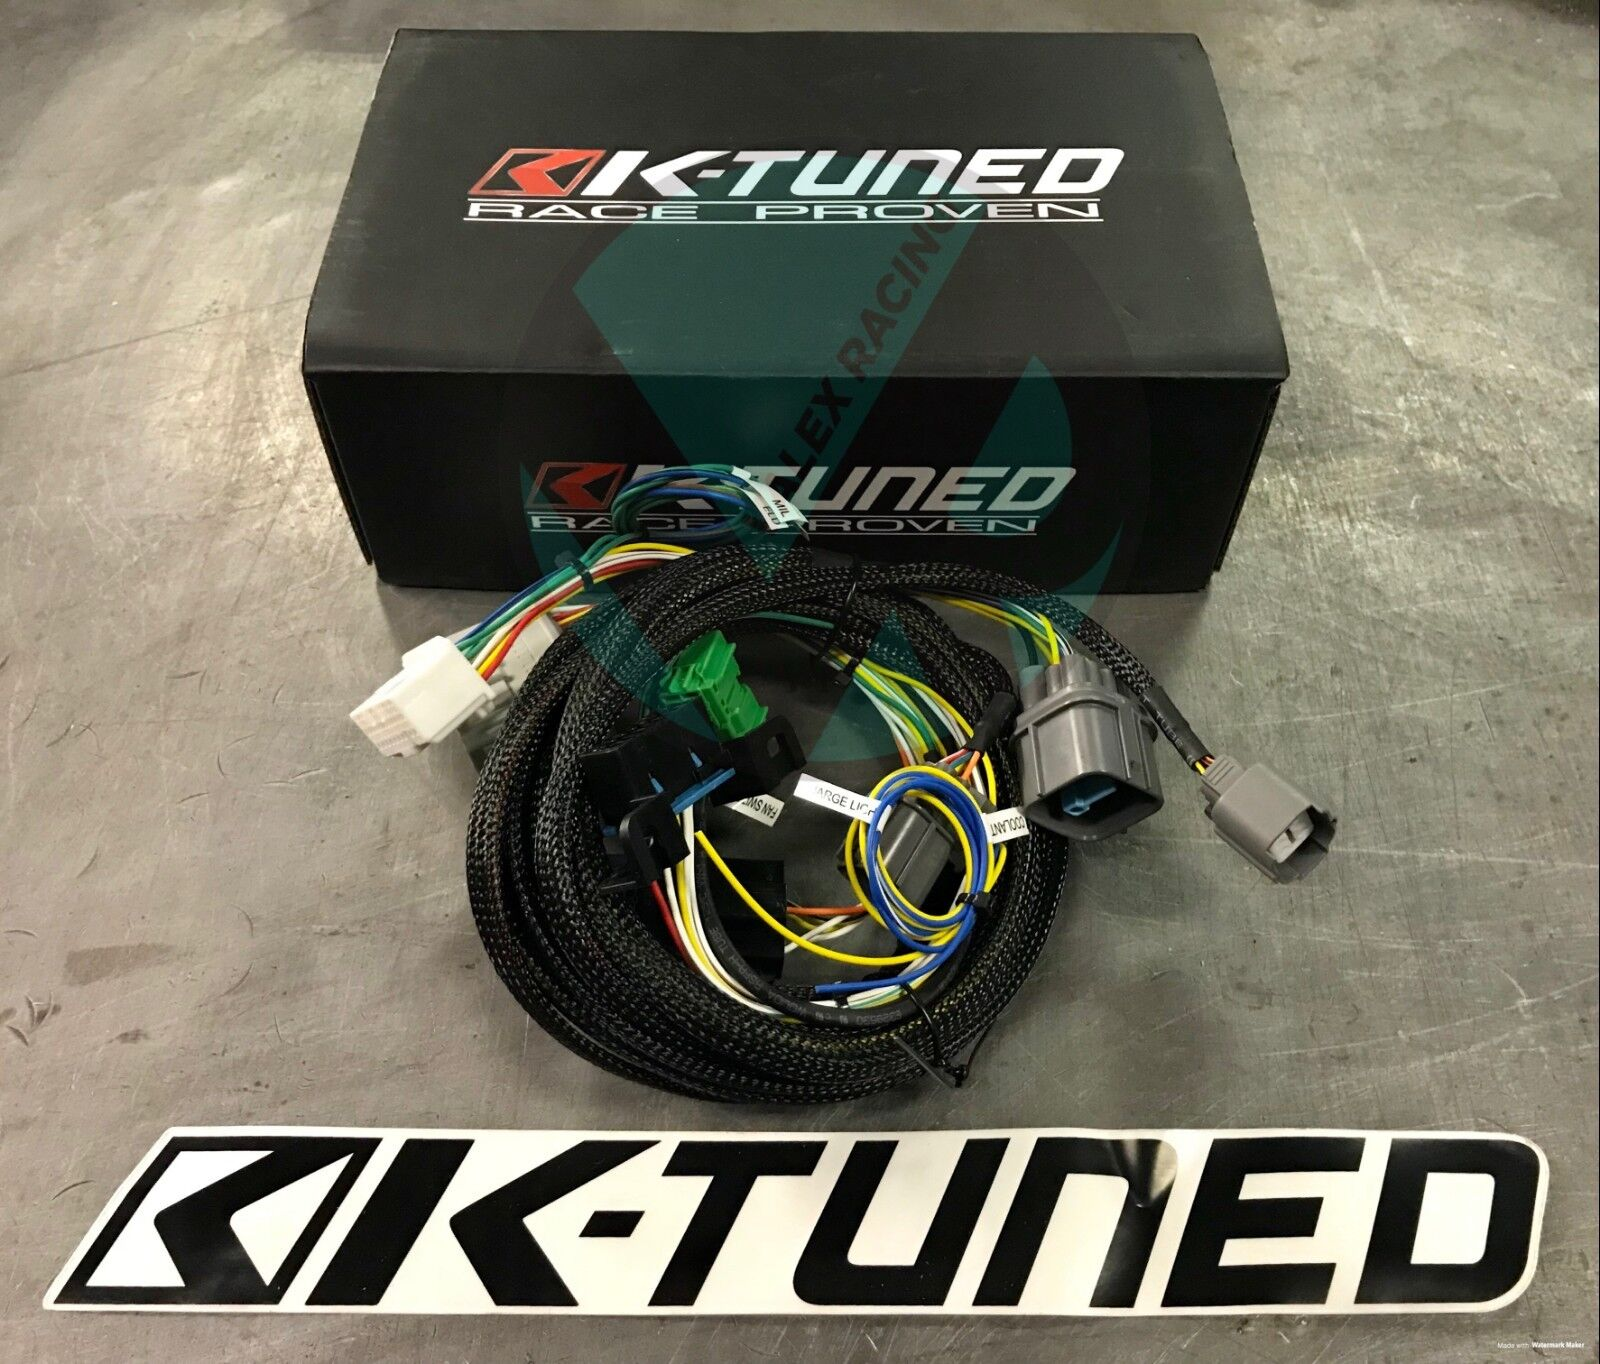 K Tuned Ek Swap Conversion Harness 99 00 Honda Civic K20 K24 Ebay K20a Wiring Norton Secured Powered By Verisign